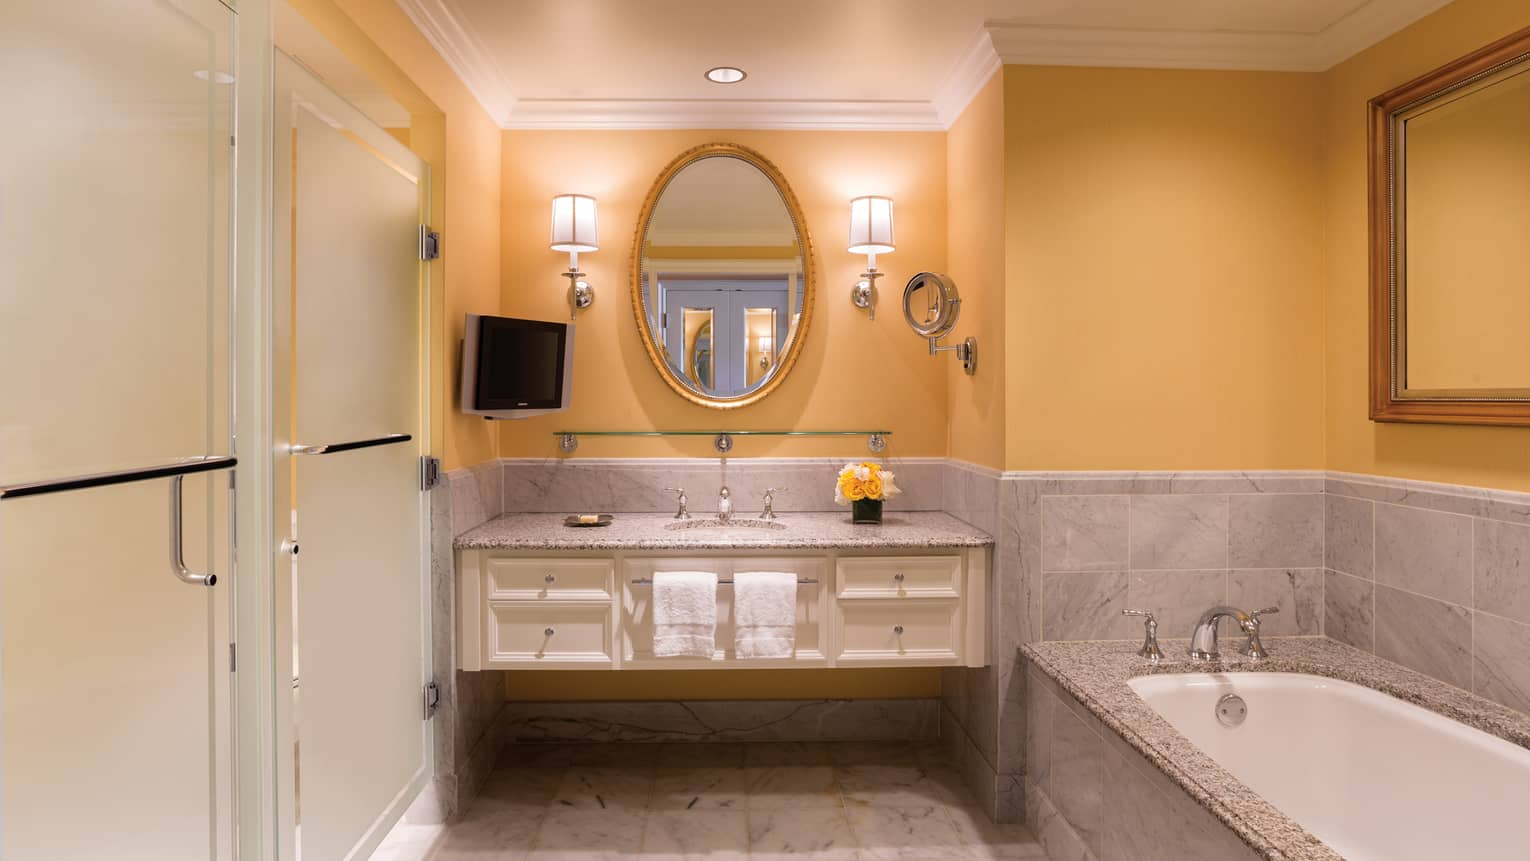 Deluxe Waterfall-View room bathroom yellow walls, flowers on vanity, sink, marble tub